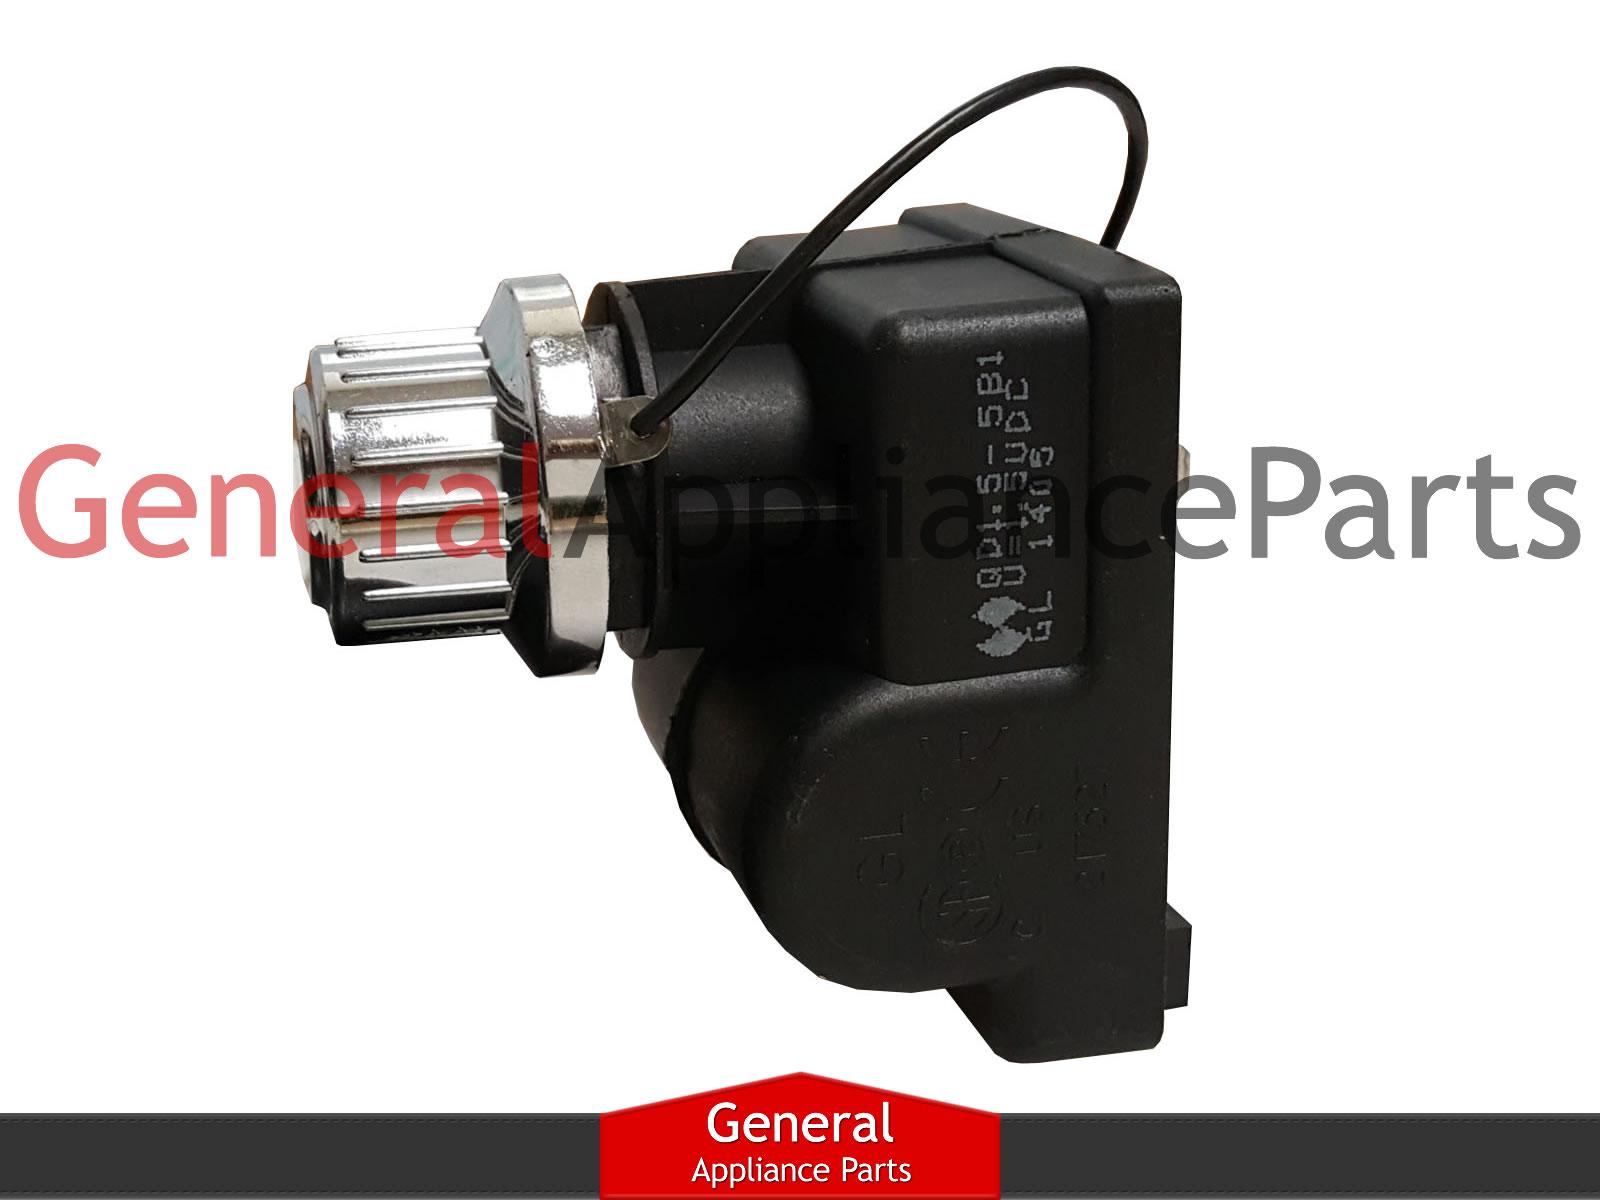 Jenn-Air Grill BBQ Ignitor Igniter Switch IGN720-0339 IGN720-0336 IGN720-0335